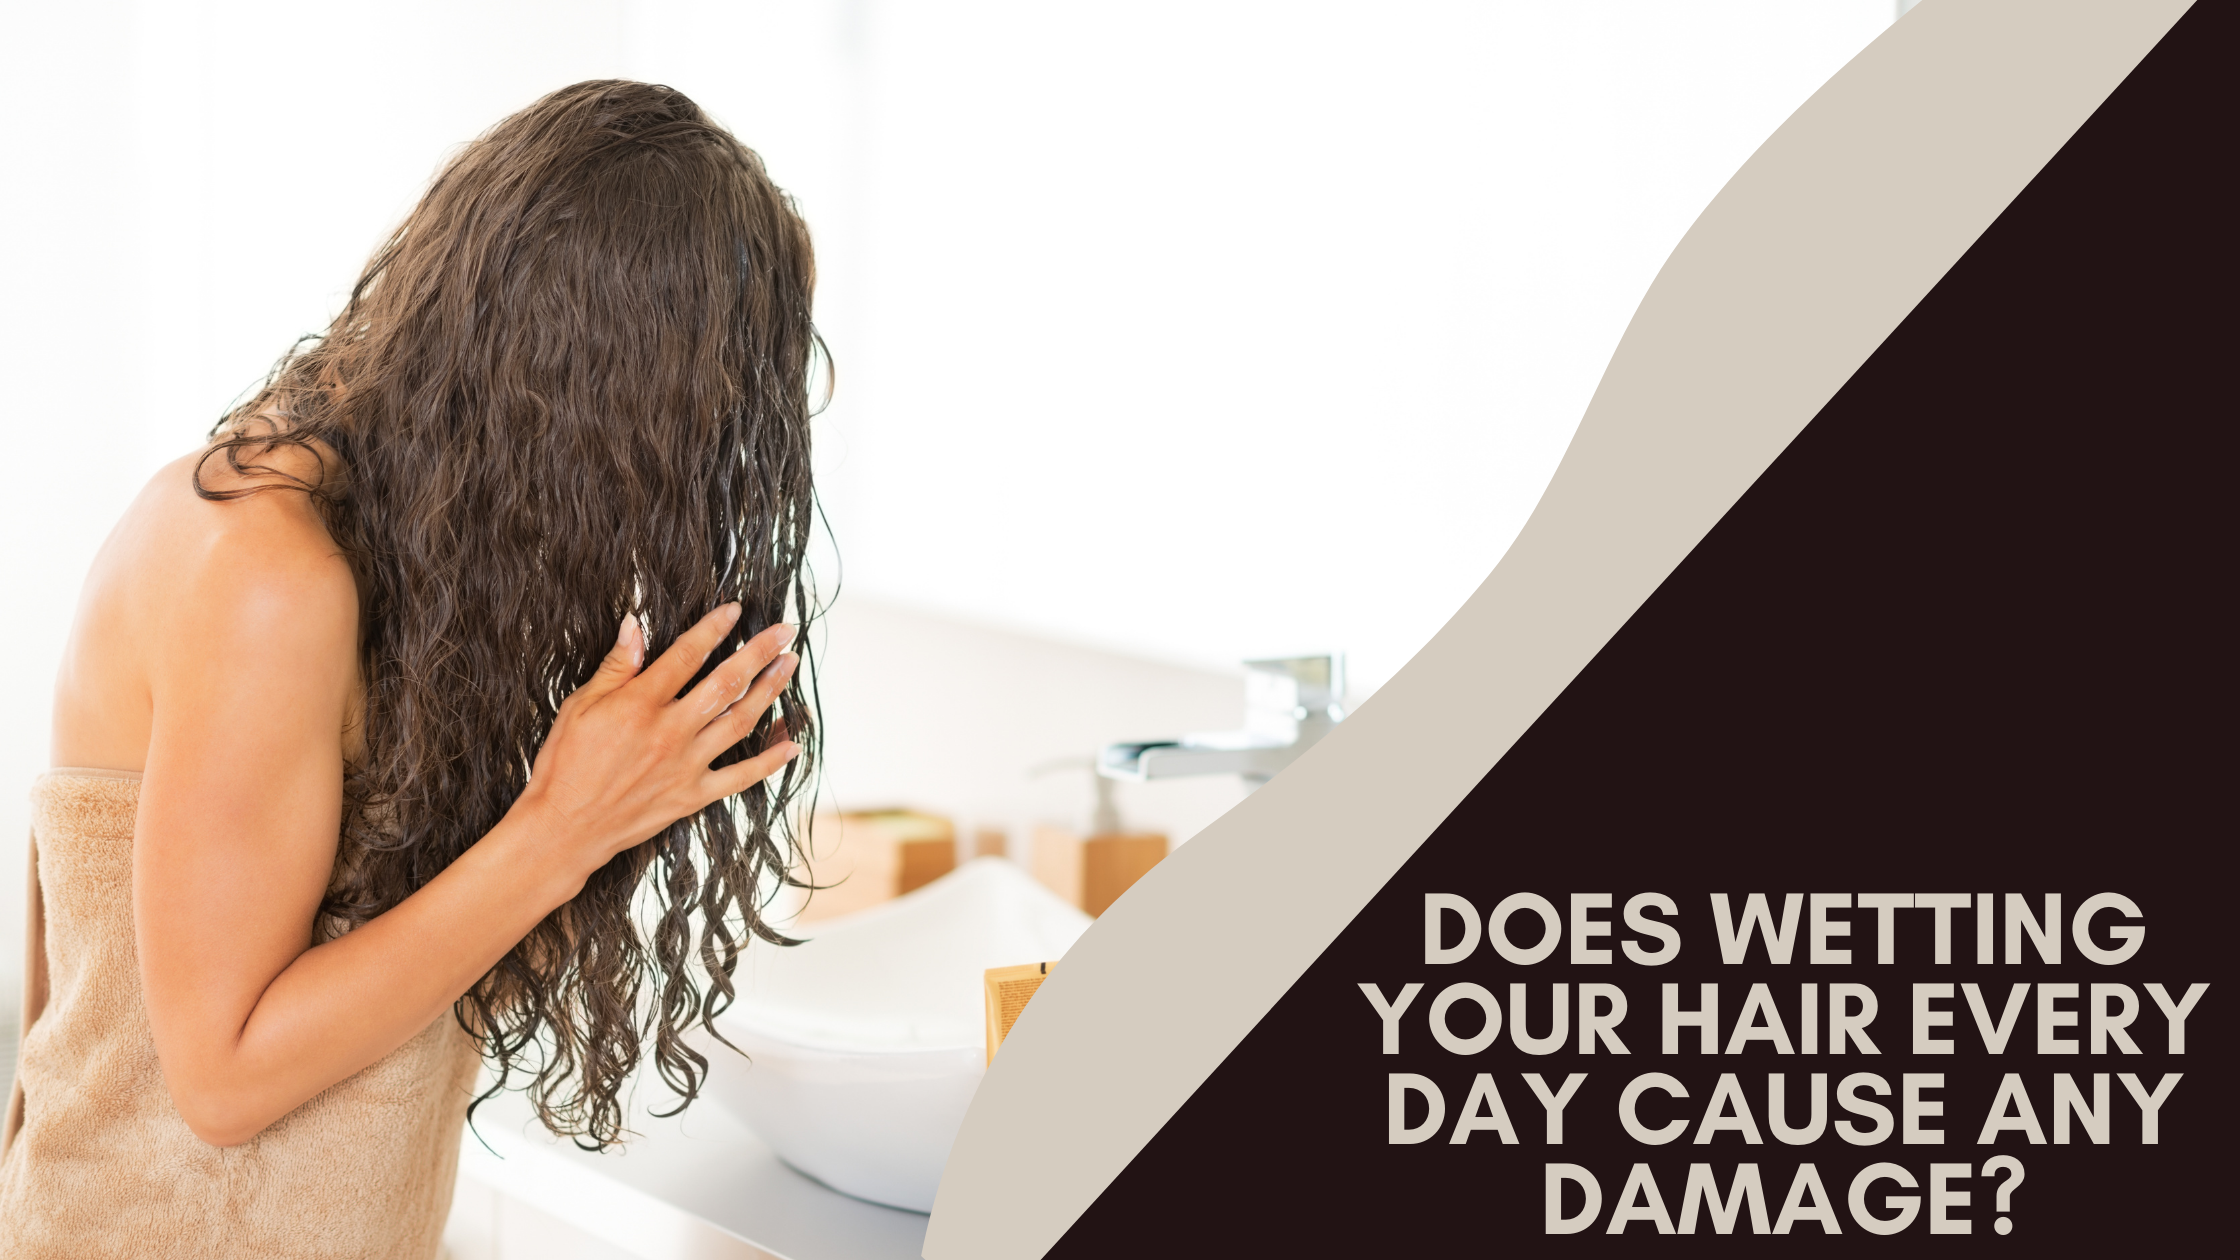 Does Wetting Your Hair Every Day Cause Any Damage?